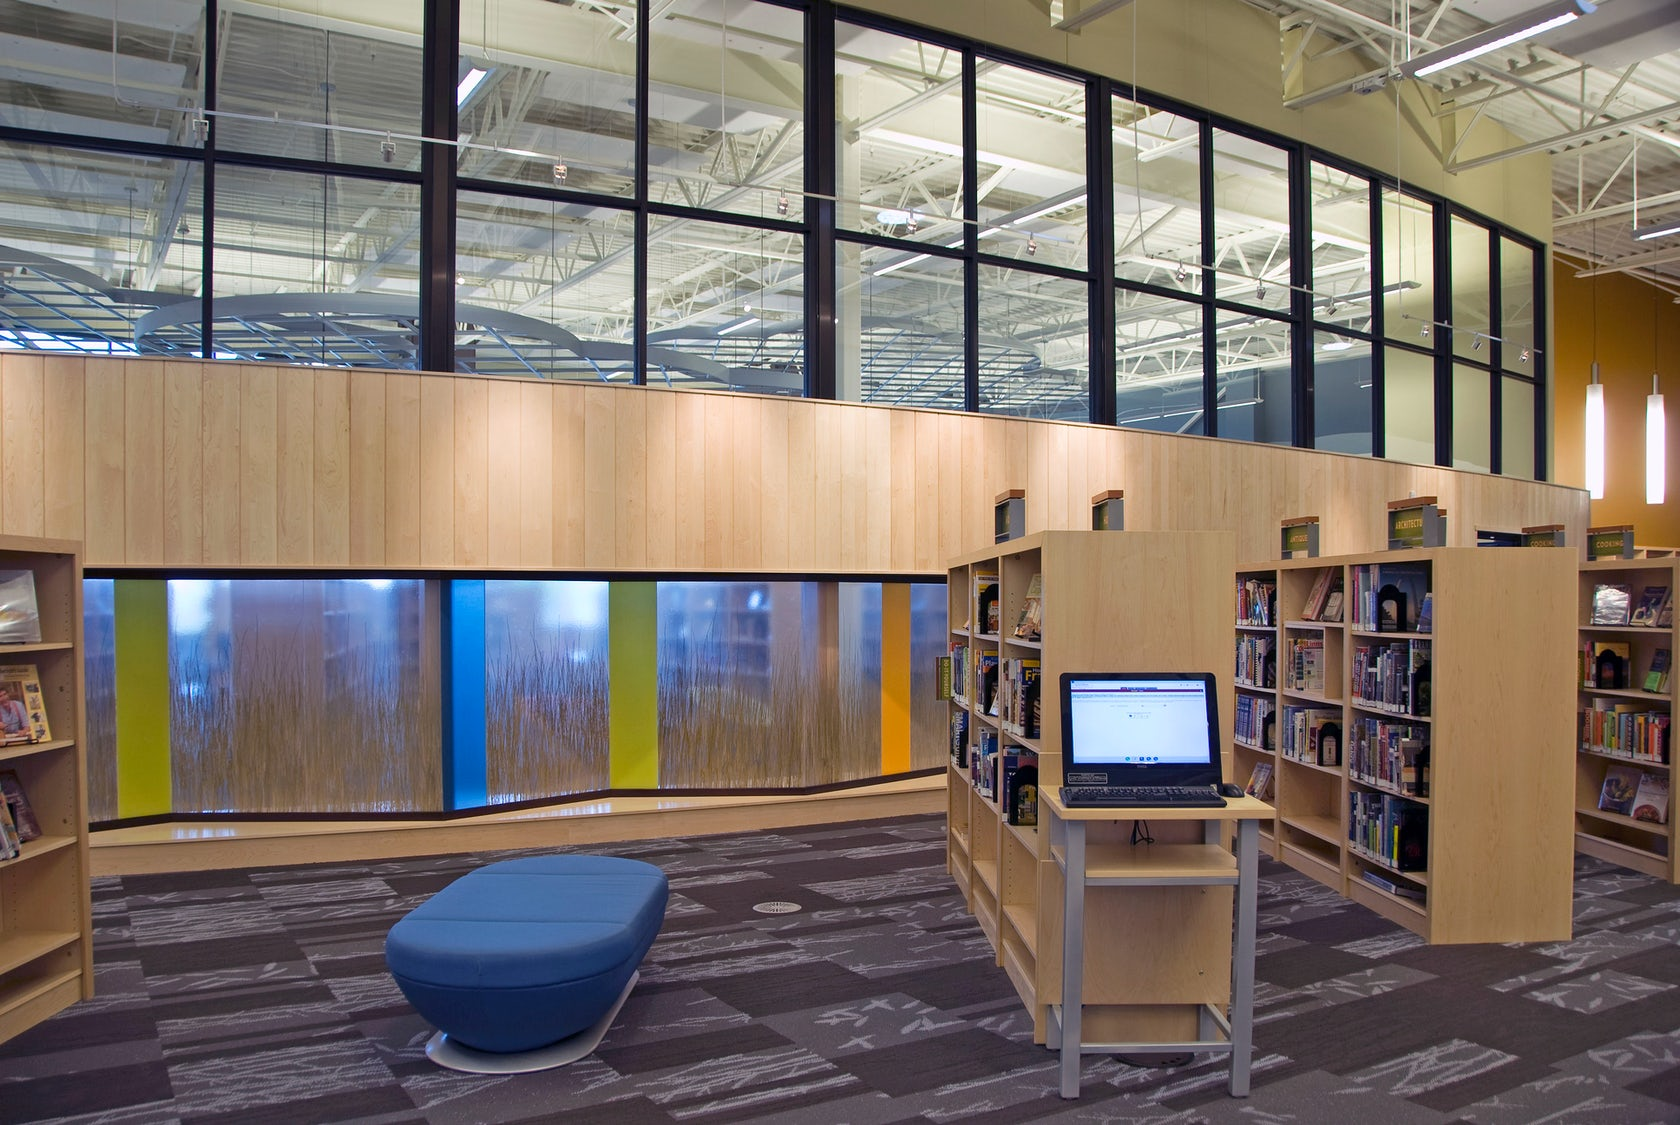 Anythink Library Study Rooms